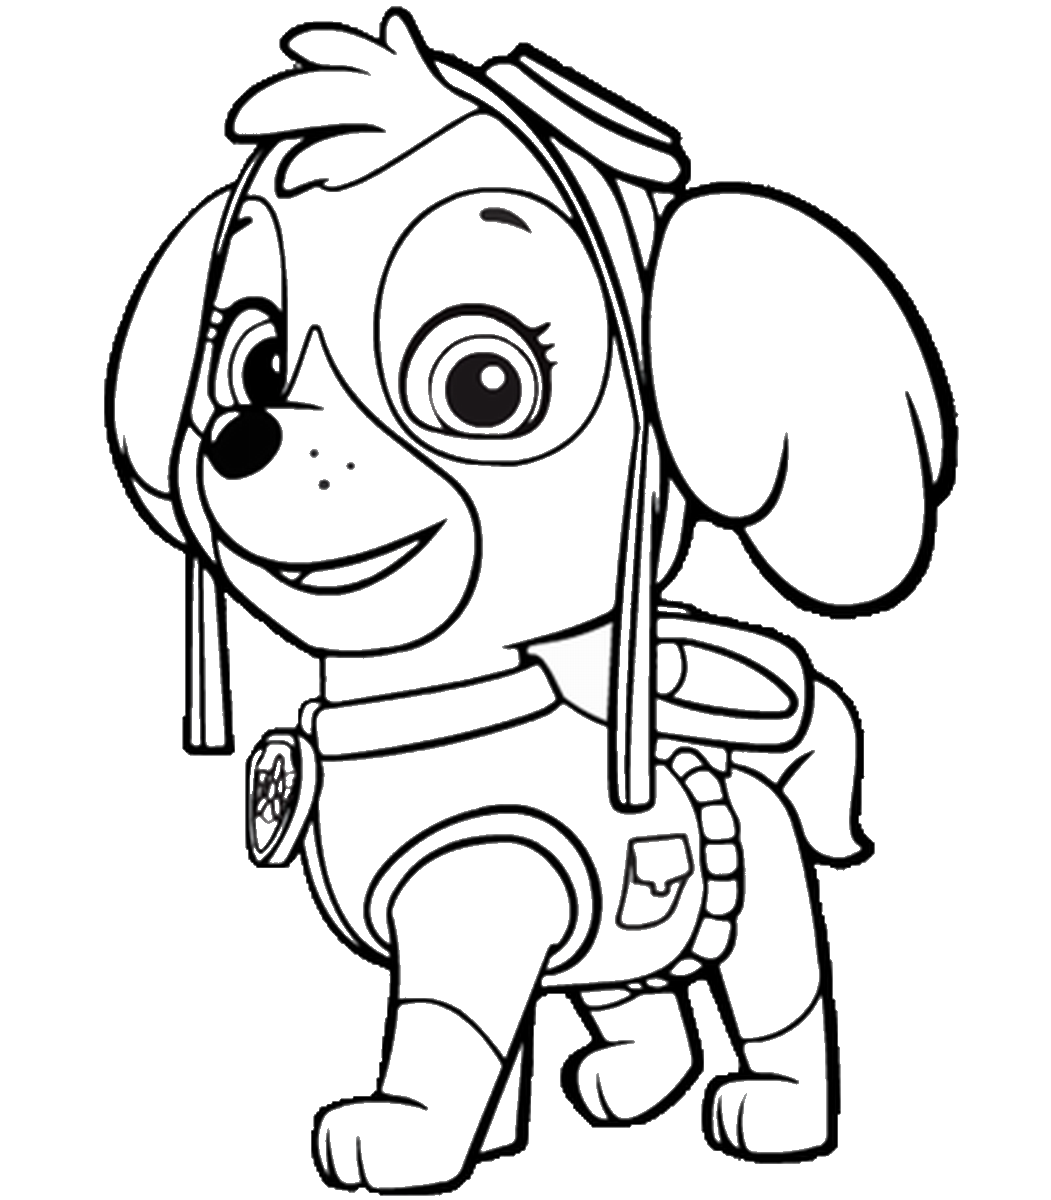 paw patrol coloring outline paw patrol coloring pages printable free coloring sheets coloring patrol outline paw